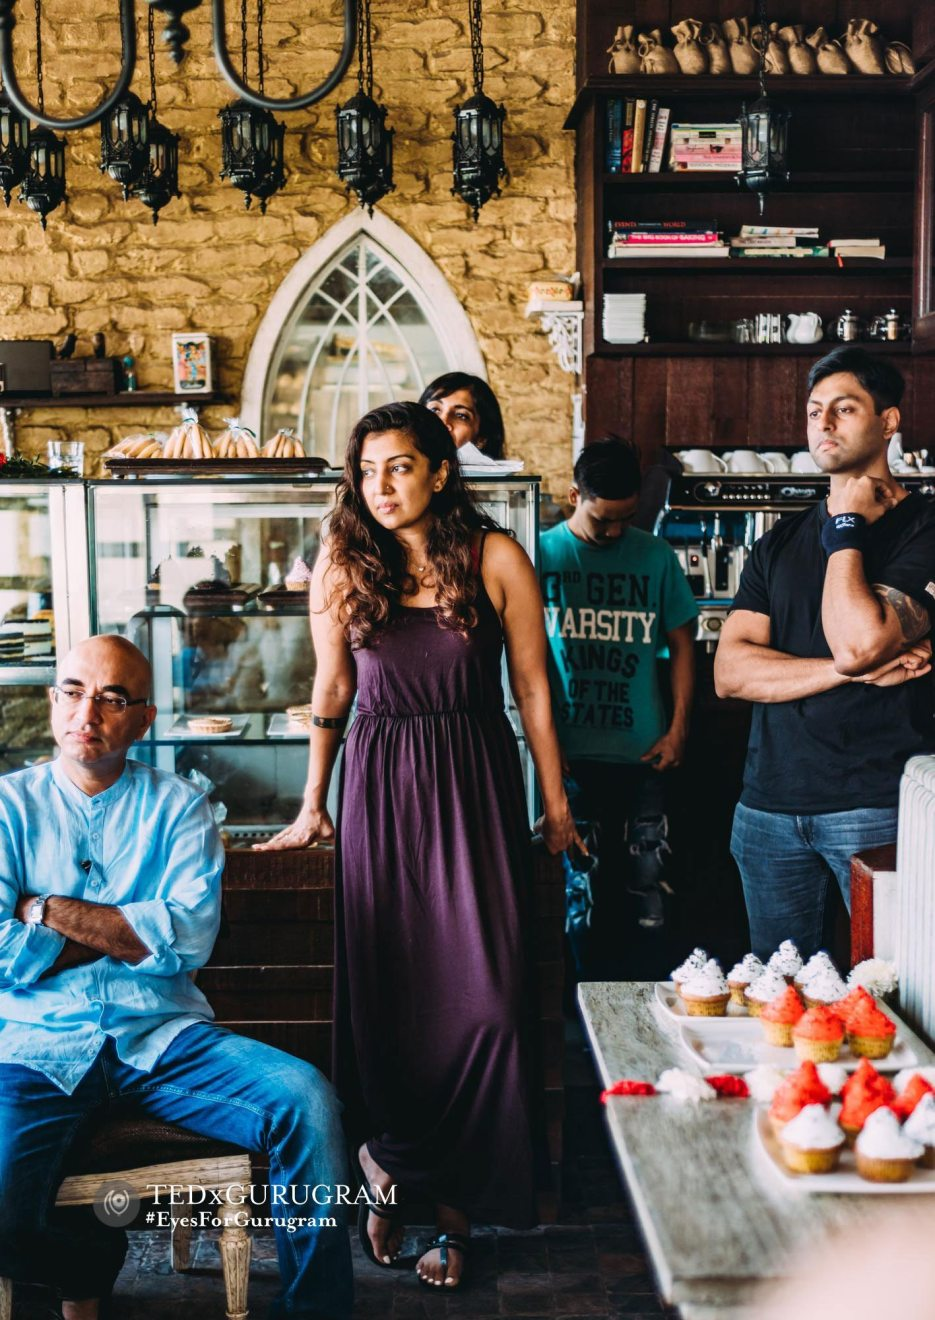 Naina.co, Visual Storyteller, Luxury Brands, Naina Redhu, Professional Photographer, Experience Collector, Luxury Photographer, Luxury Blogger, Lifestyle, Visual Storyteller for Luxury Brands, #EyesForGurgaon, Eyes For Gurgaon, #EyesForGurugram, Eyes For Gurugram, TEDxGurugram, TED, TEDx, Gurgaon Photographer, Sponsors, Sponsorship, Sponsor Brunch, DiGhent Cafe, Antje Pfahl, Bal DiGhent